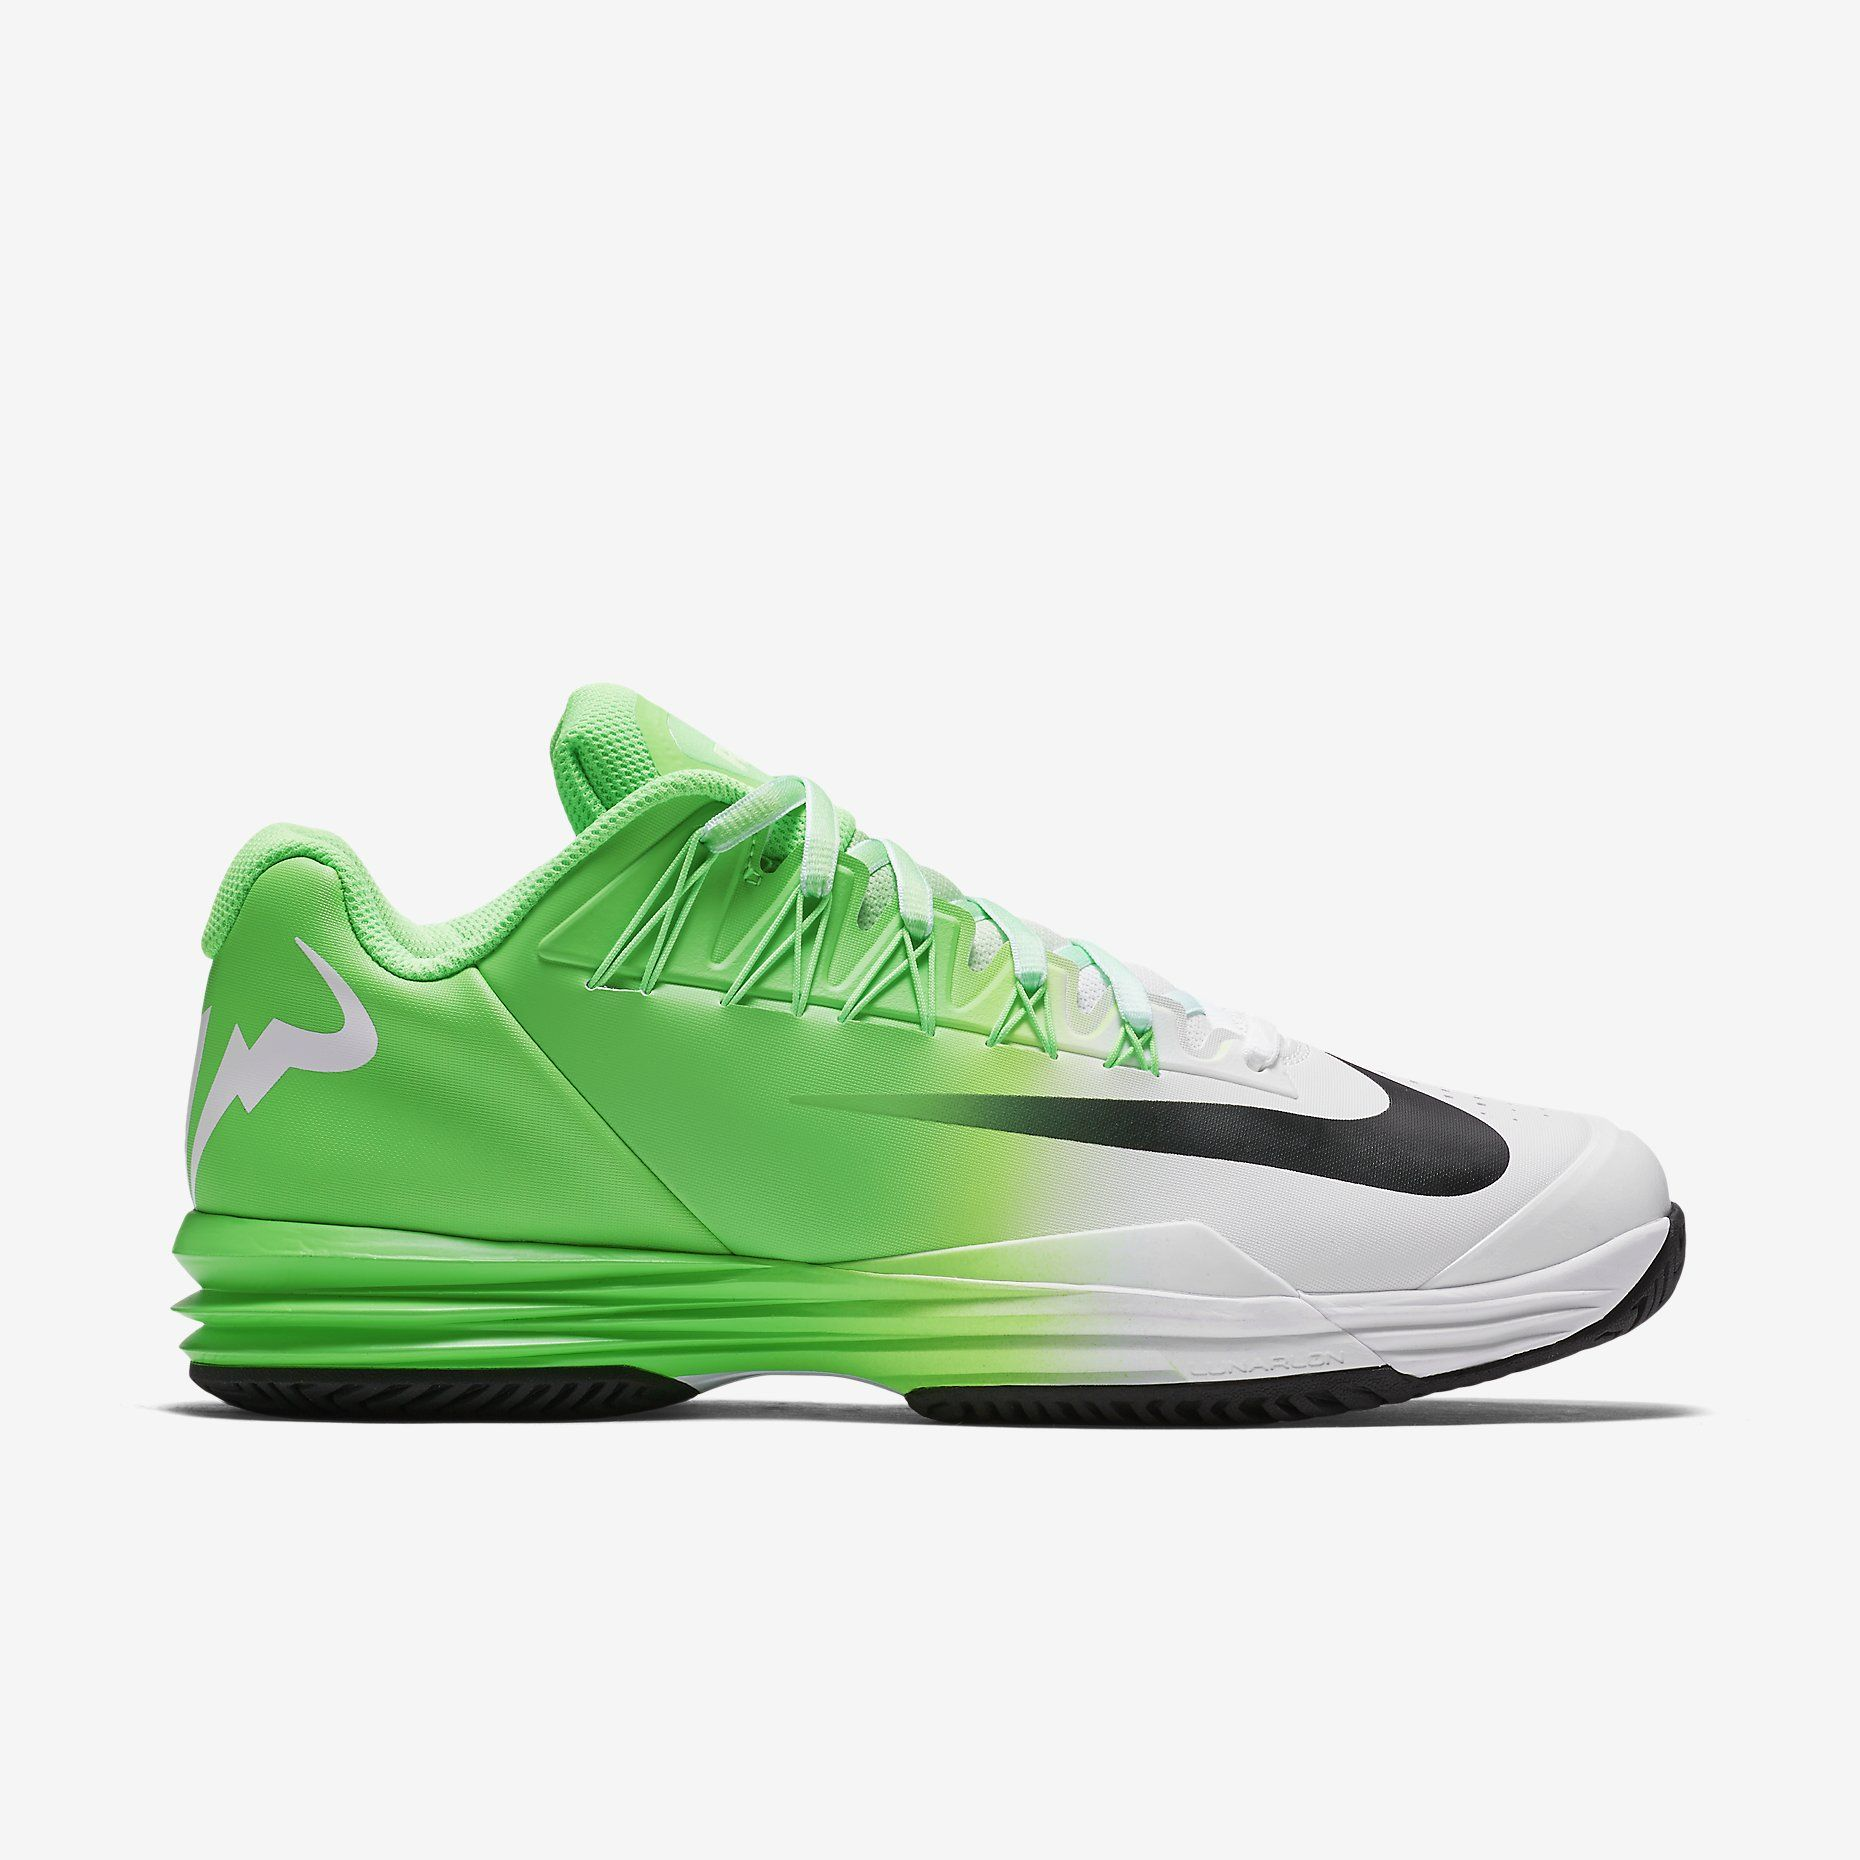 porcelana Dictado Nuclear  Rafael Nadal Nike 2015 US Open Outfit | Nike, Mens tennis shoes, Nike store